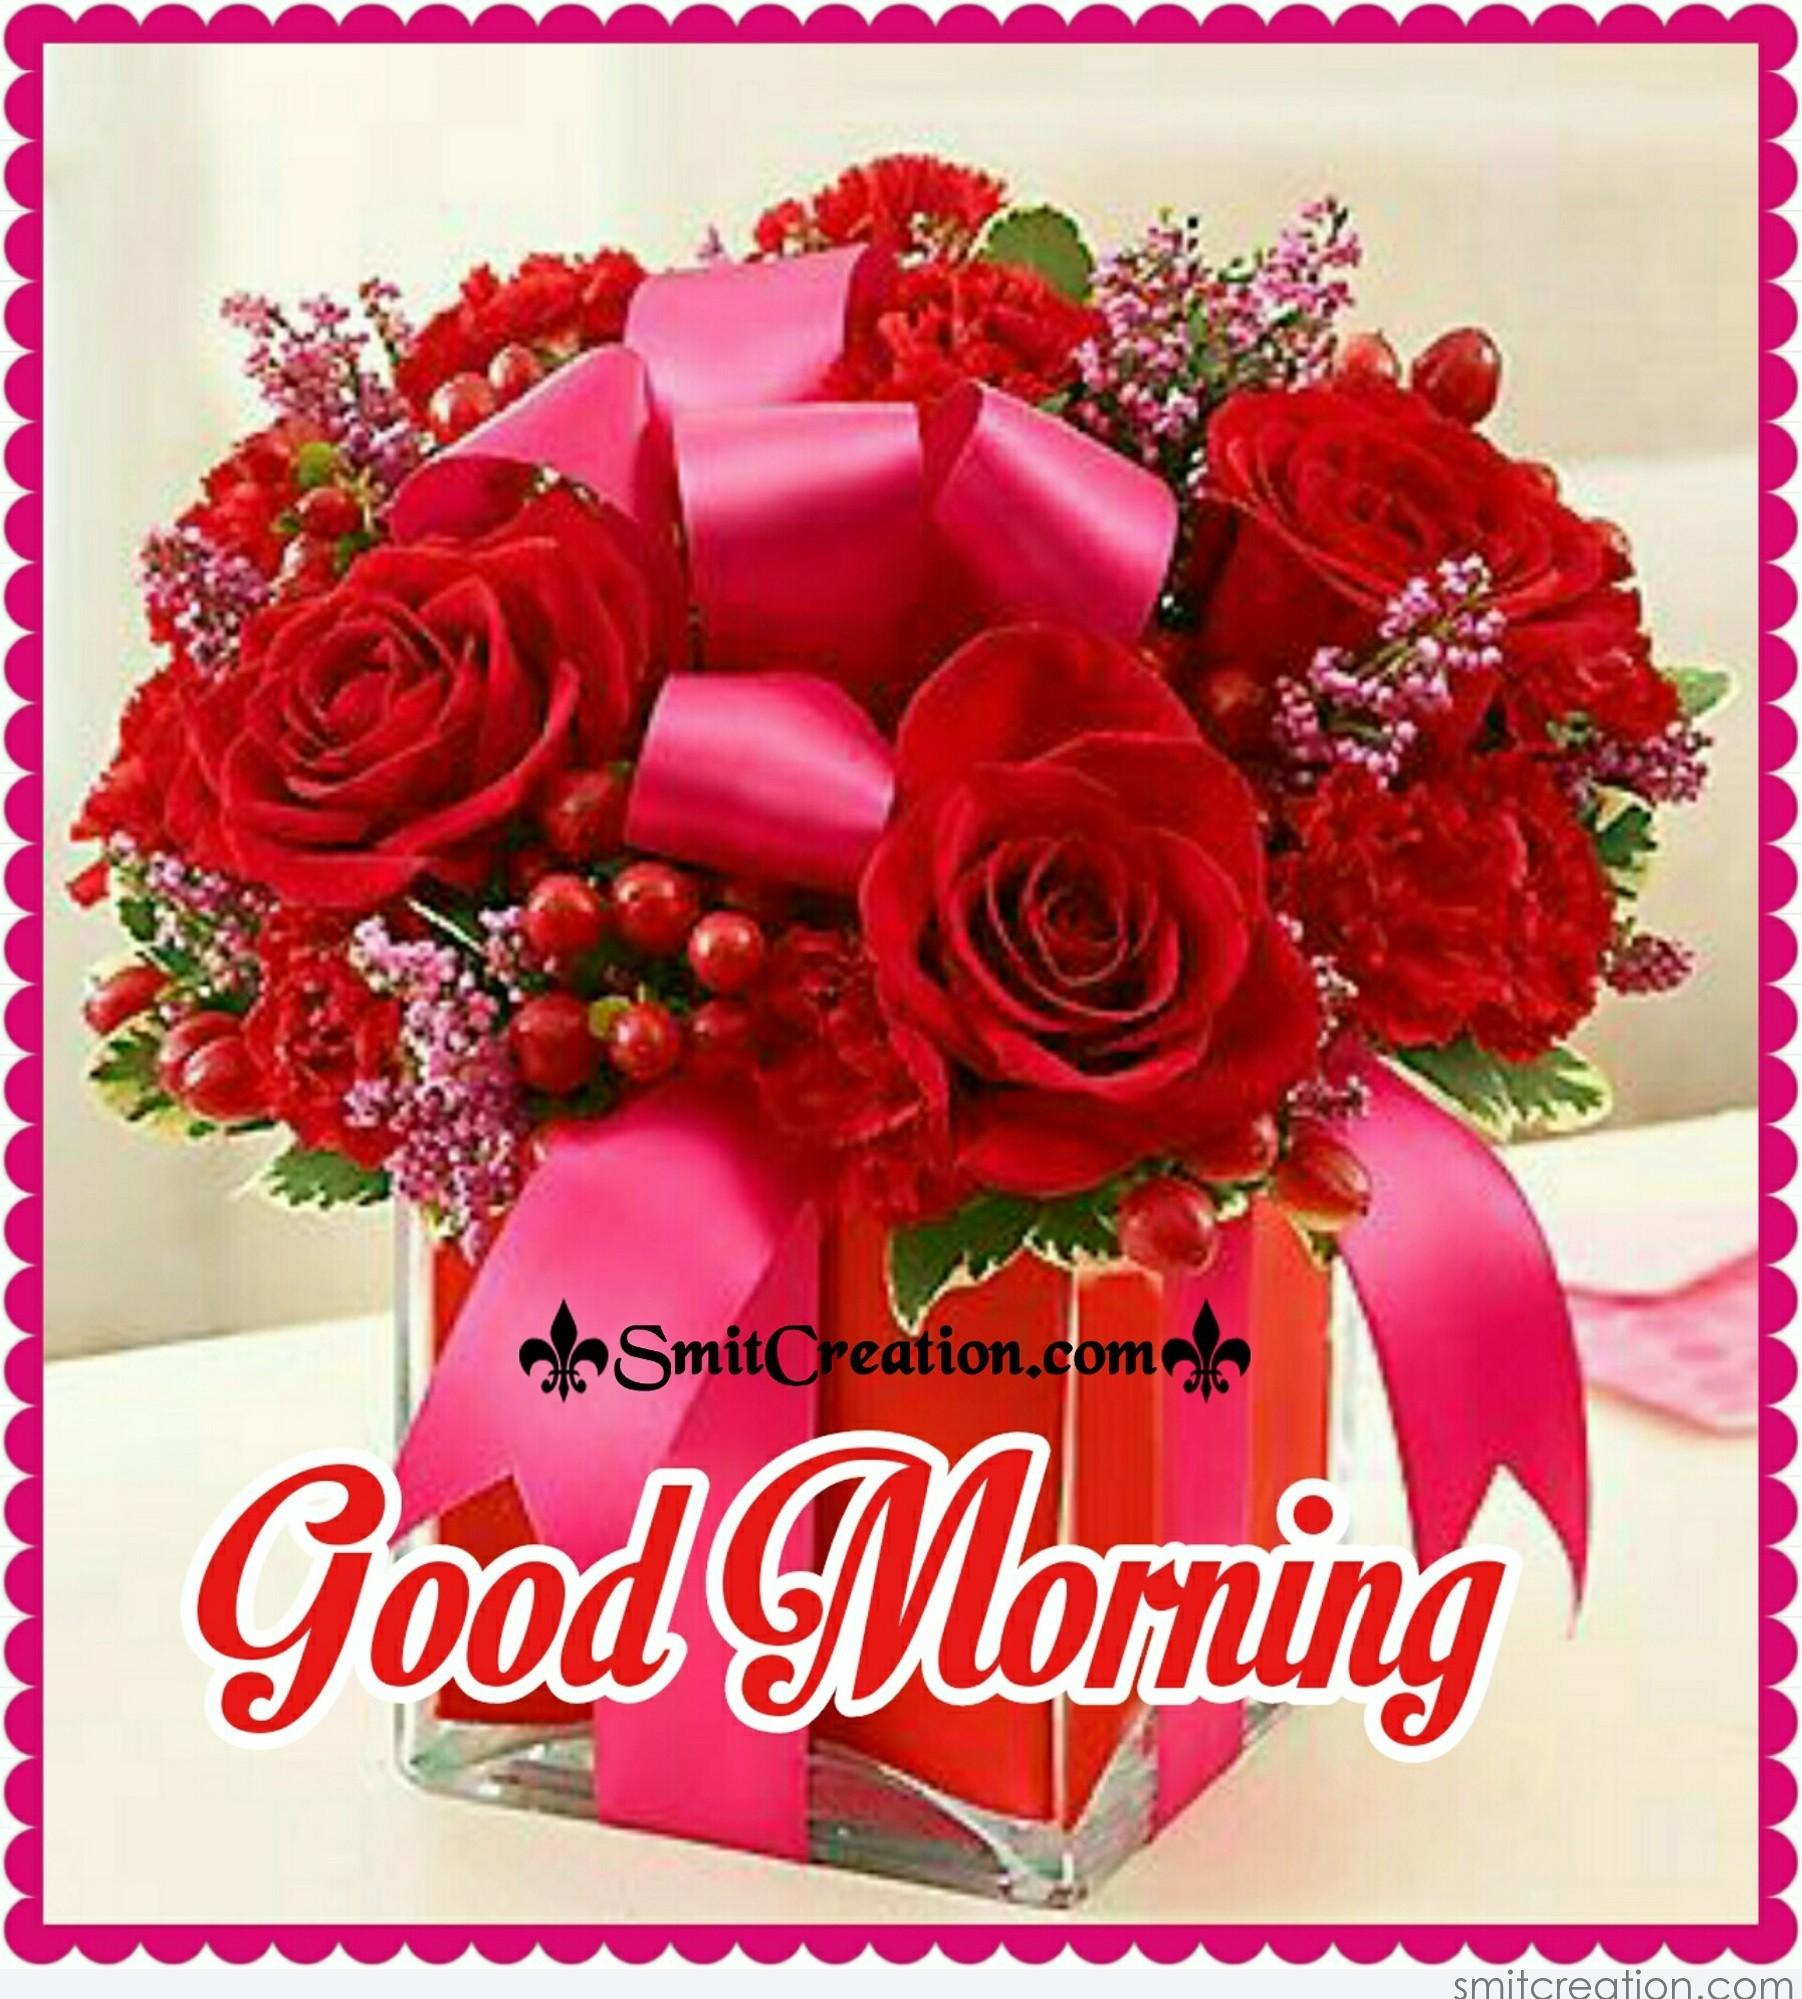 Good Morning Bouquet Pictures And Graphics Smitcreation